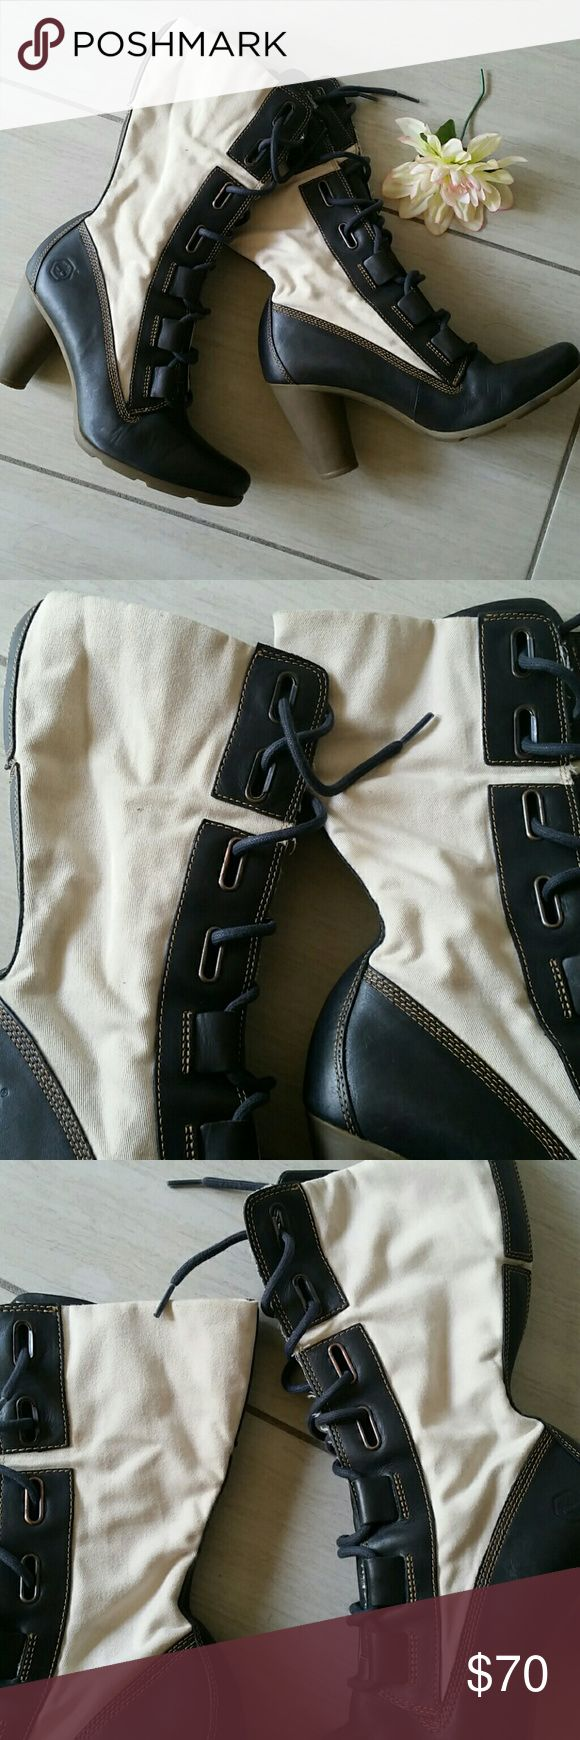 """Timberland high heel lace up combat boots. In excellent condition.  Black and beige color. Heel about 3"""" high.  Beige color fabric has some stains hard to notice in pics. Genuine leather, man made upper and lining. Size 8.5M. Timberland Shoes Combat & Moto Boots"""